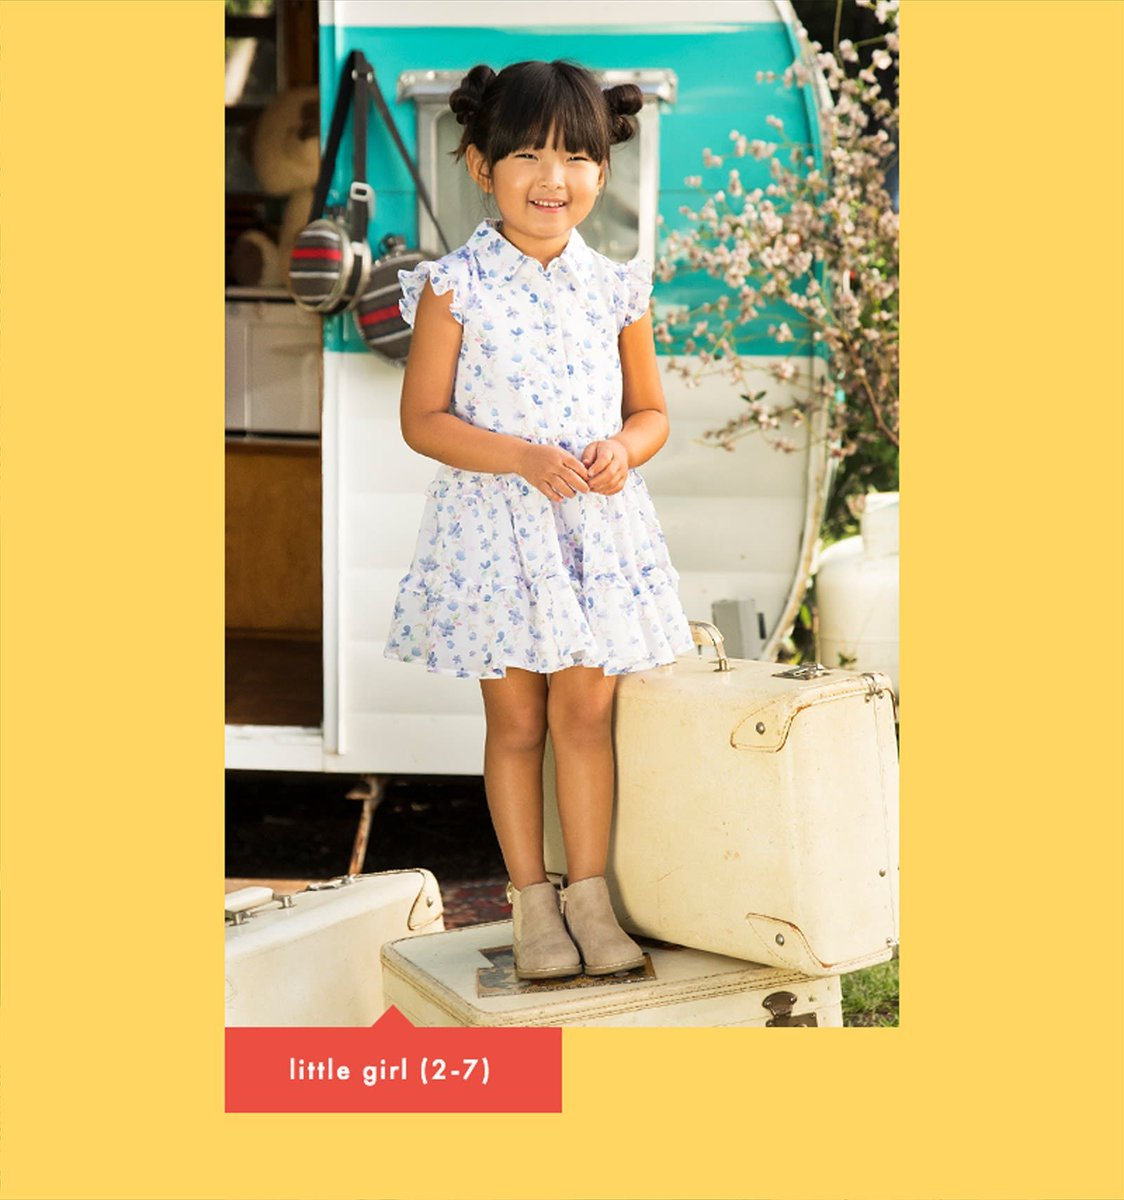 Spring is just around the corner and we can't wait! Melody for Guess Kids! @guesskids @guess #zuri #zuriagency #guess #guesskids #kidsclothes #kidsstyle #kidsfashion #fashion #style